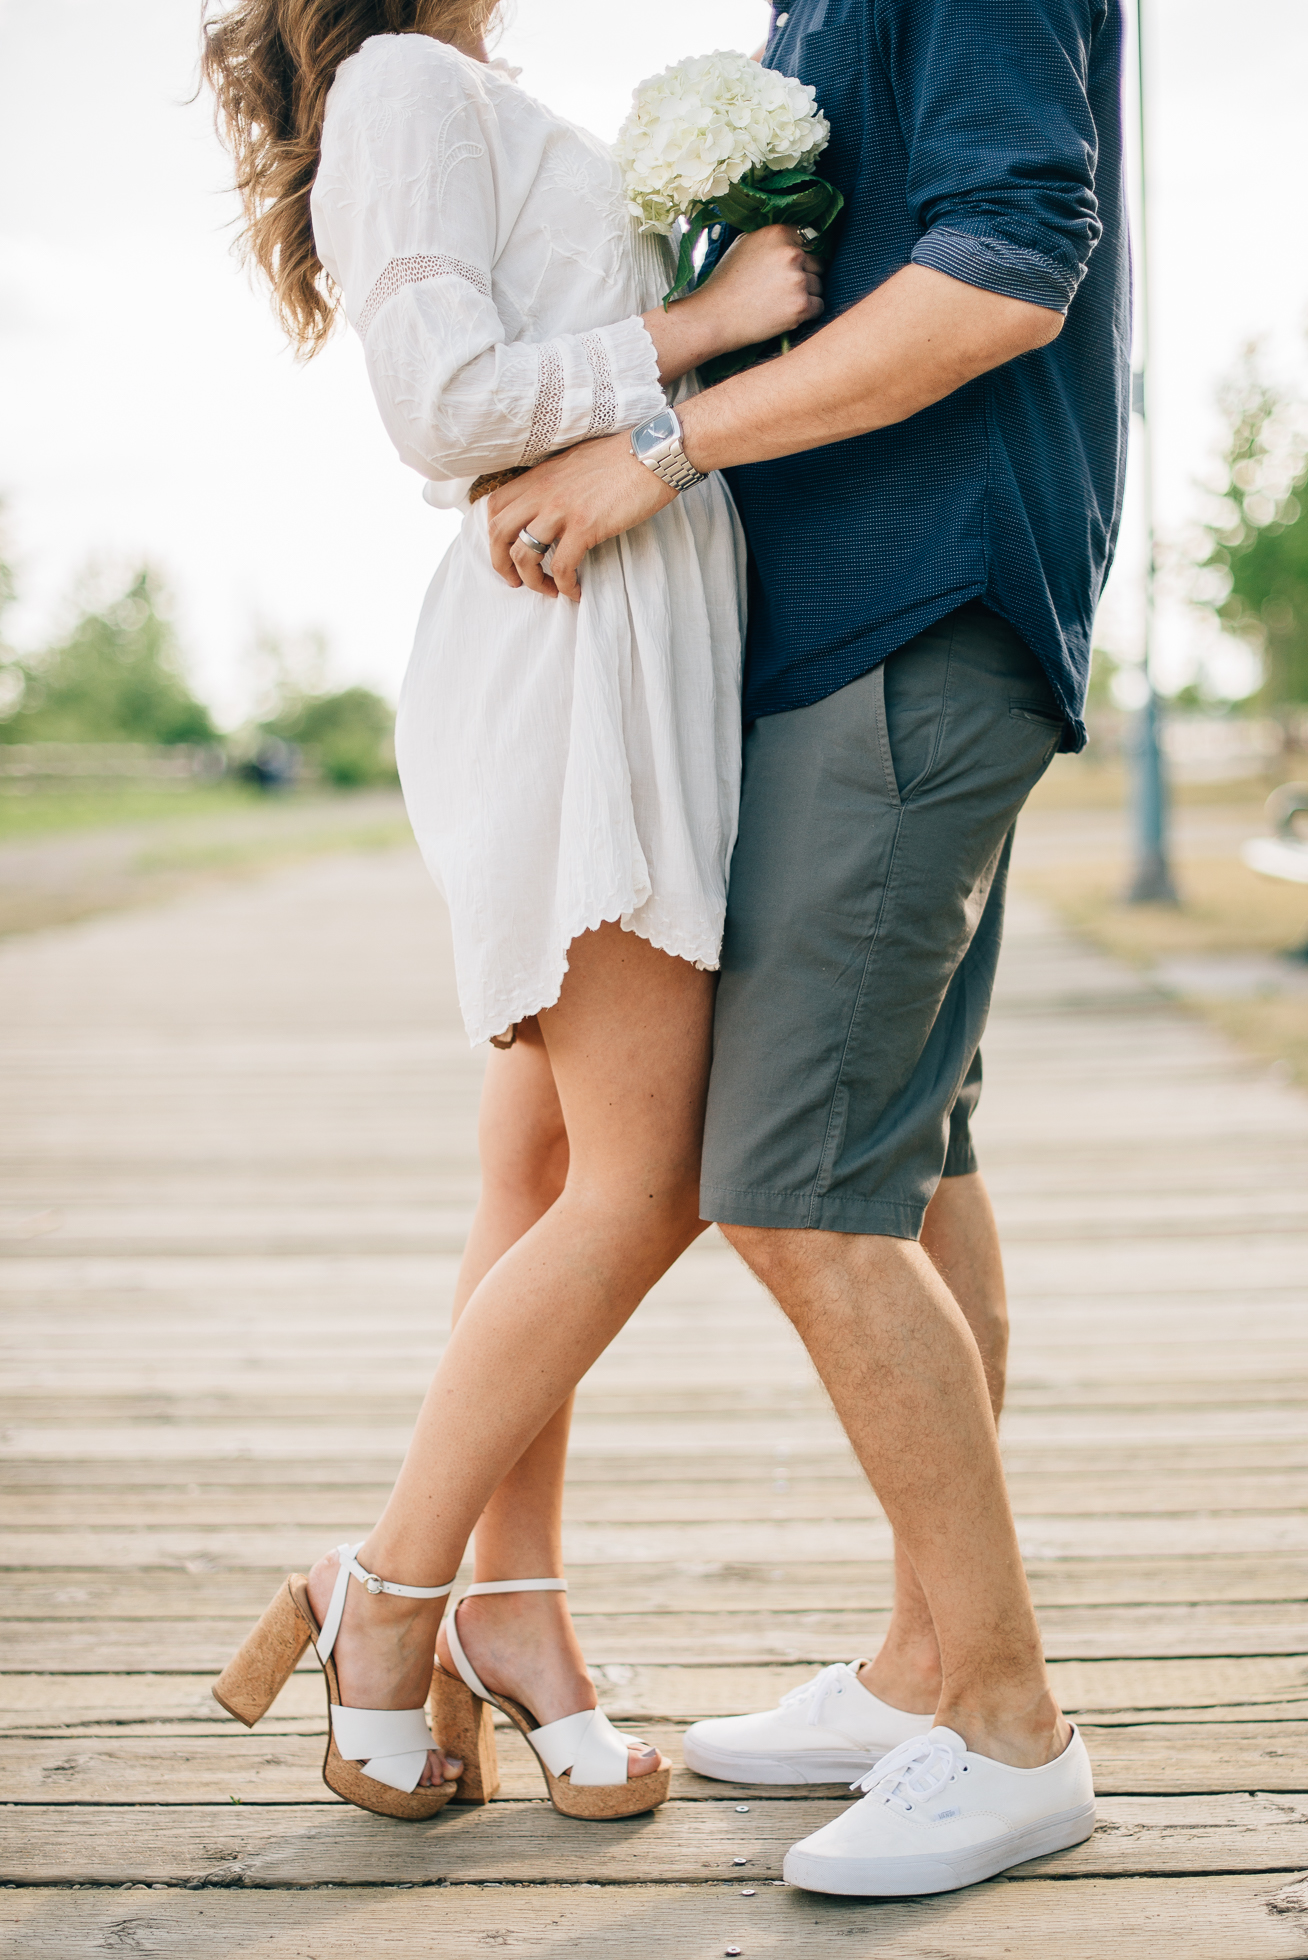 Toronto-Beaches-Elopement-Engagement-Shoot-7